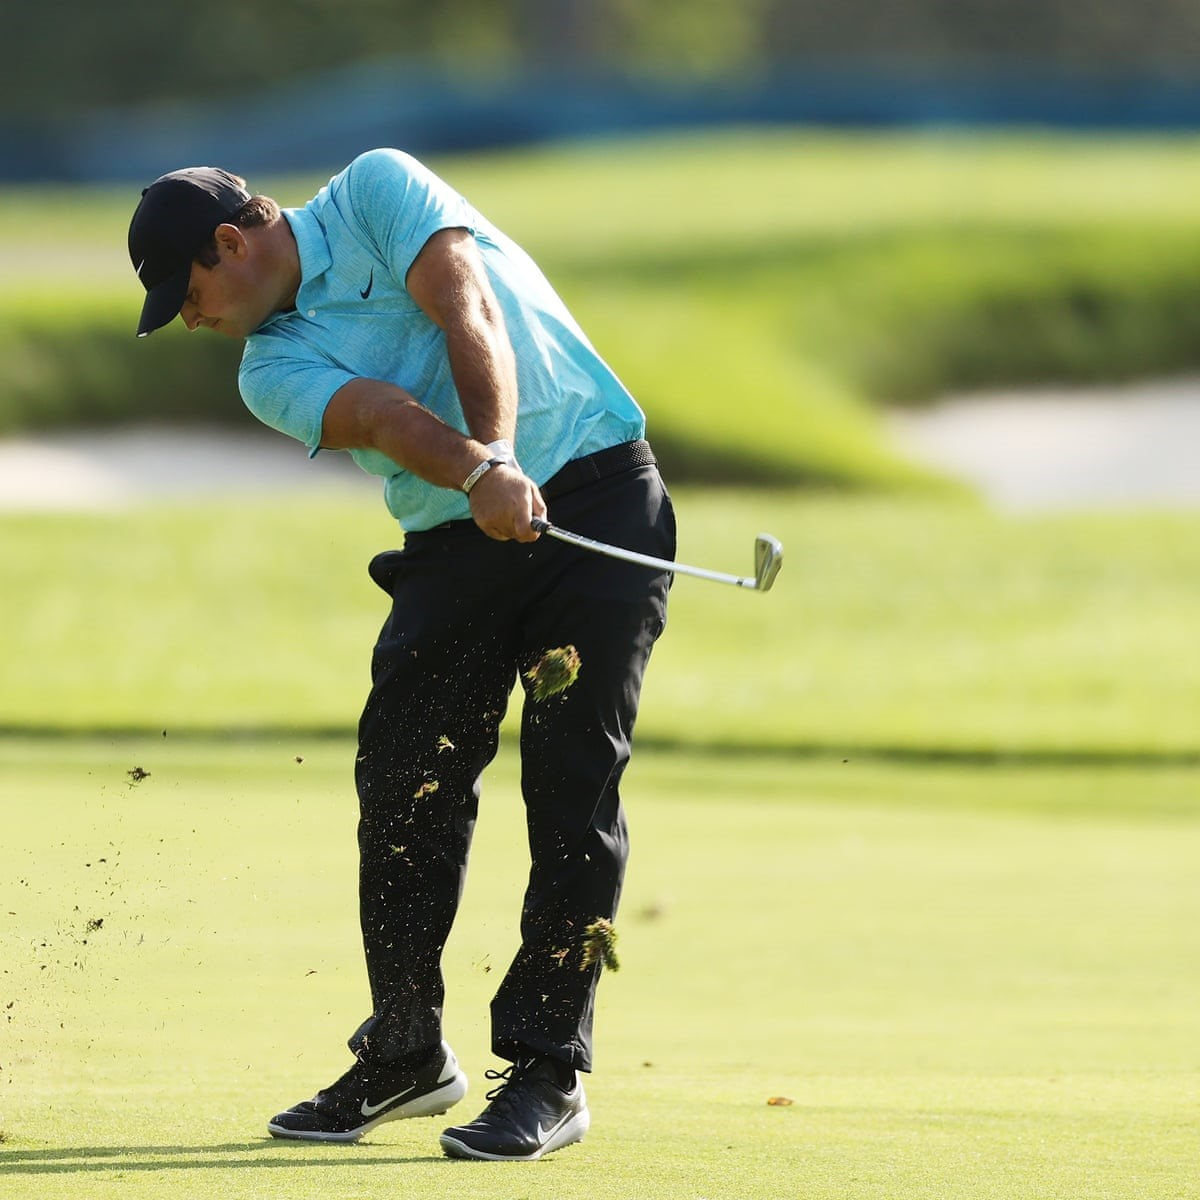 Check These Golf Tips for Beginners